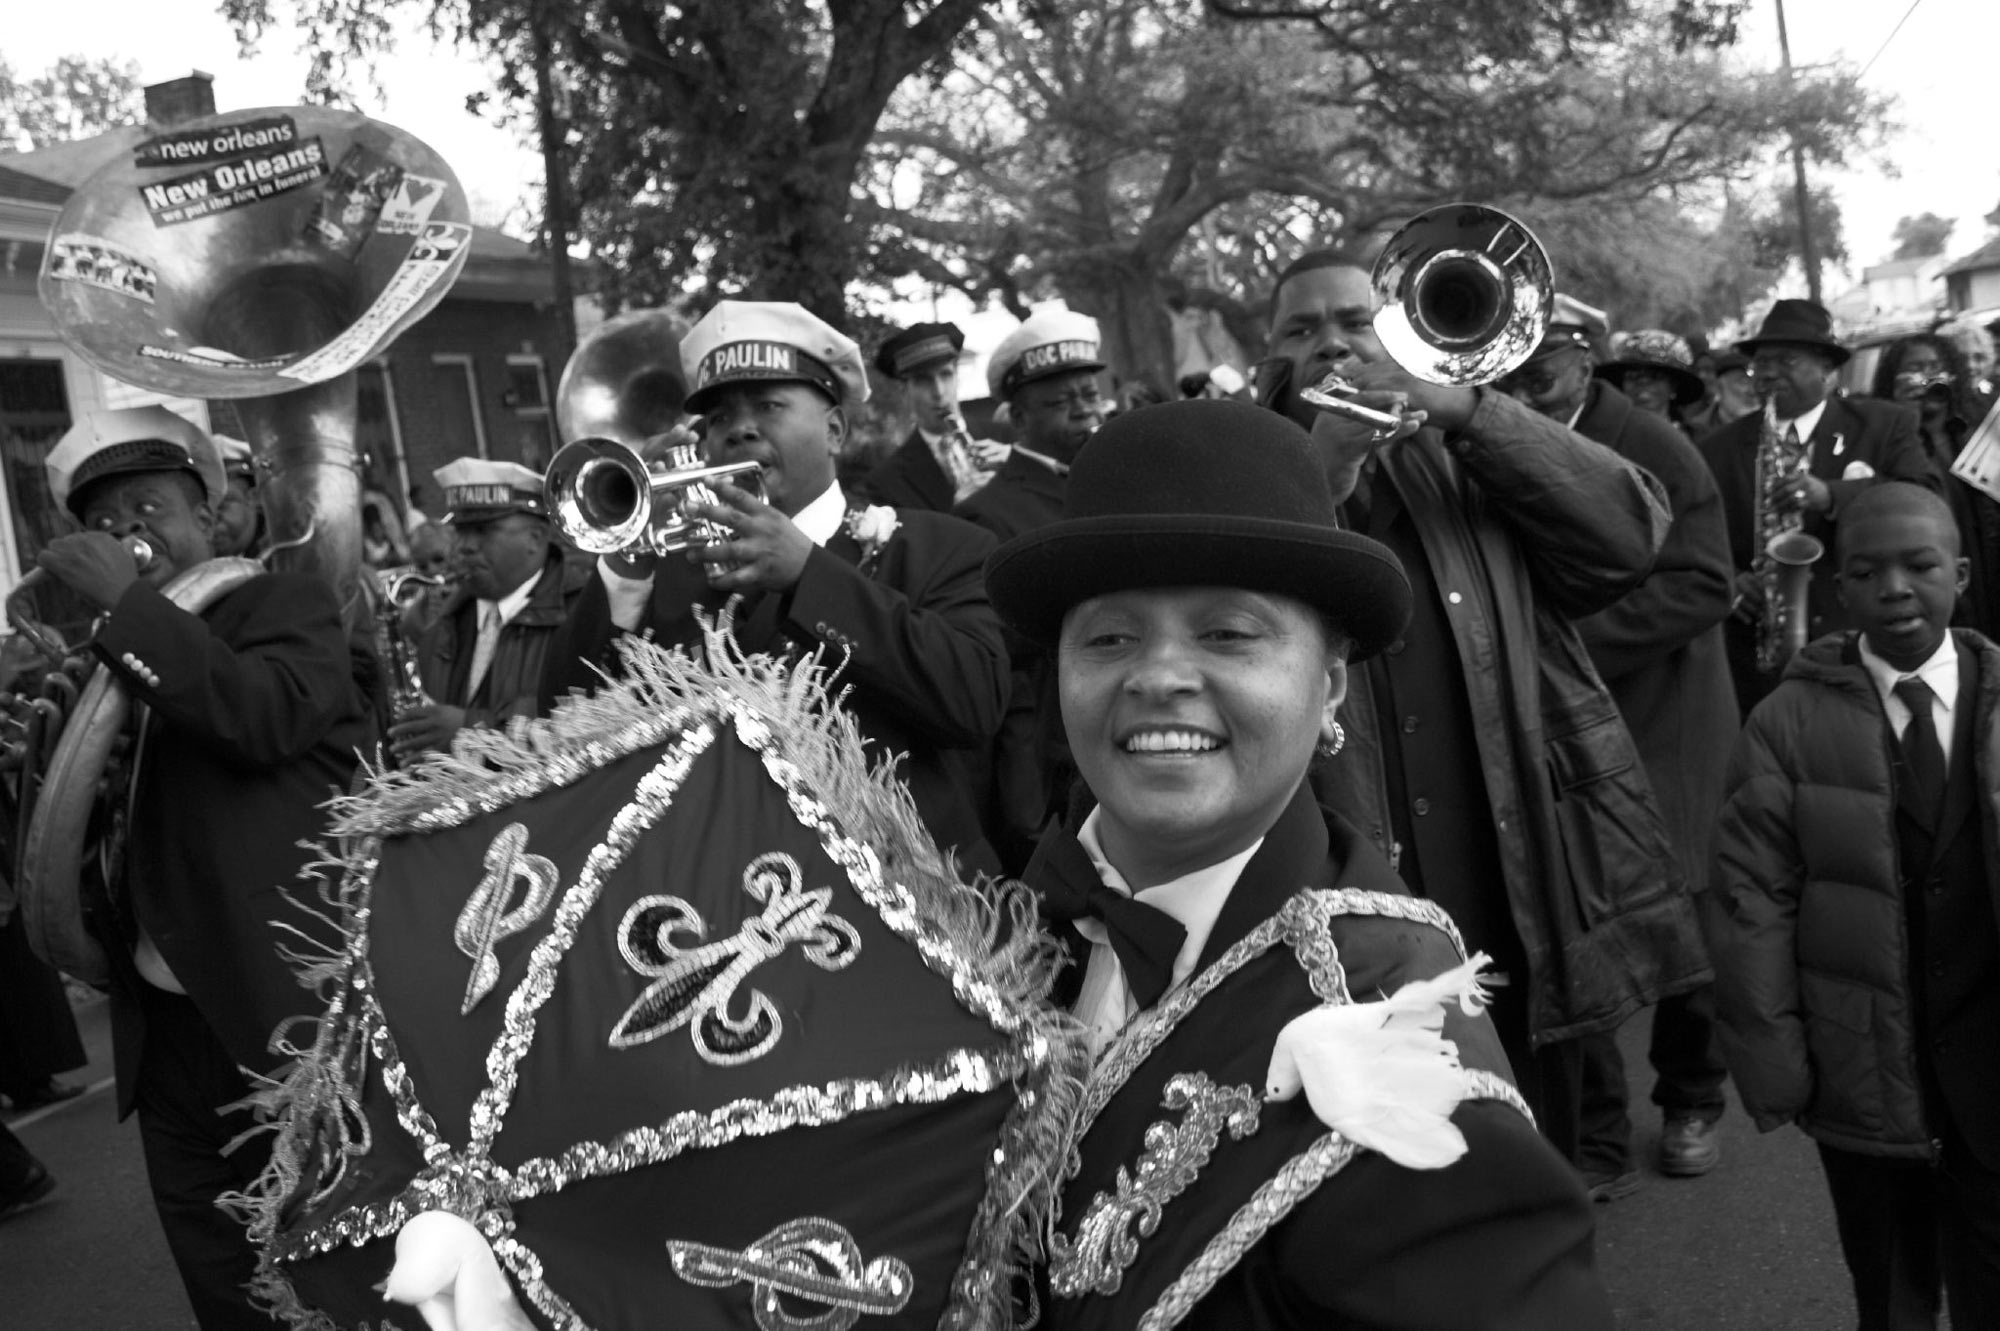 A jazz funeral in New Orleans is held for legendary jazz musician Doc Paulin who led many funerals in New Orleans with his trumpet. Photo by Derek Bridges.